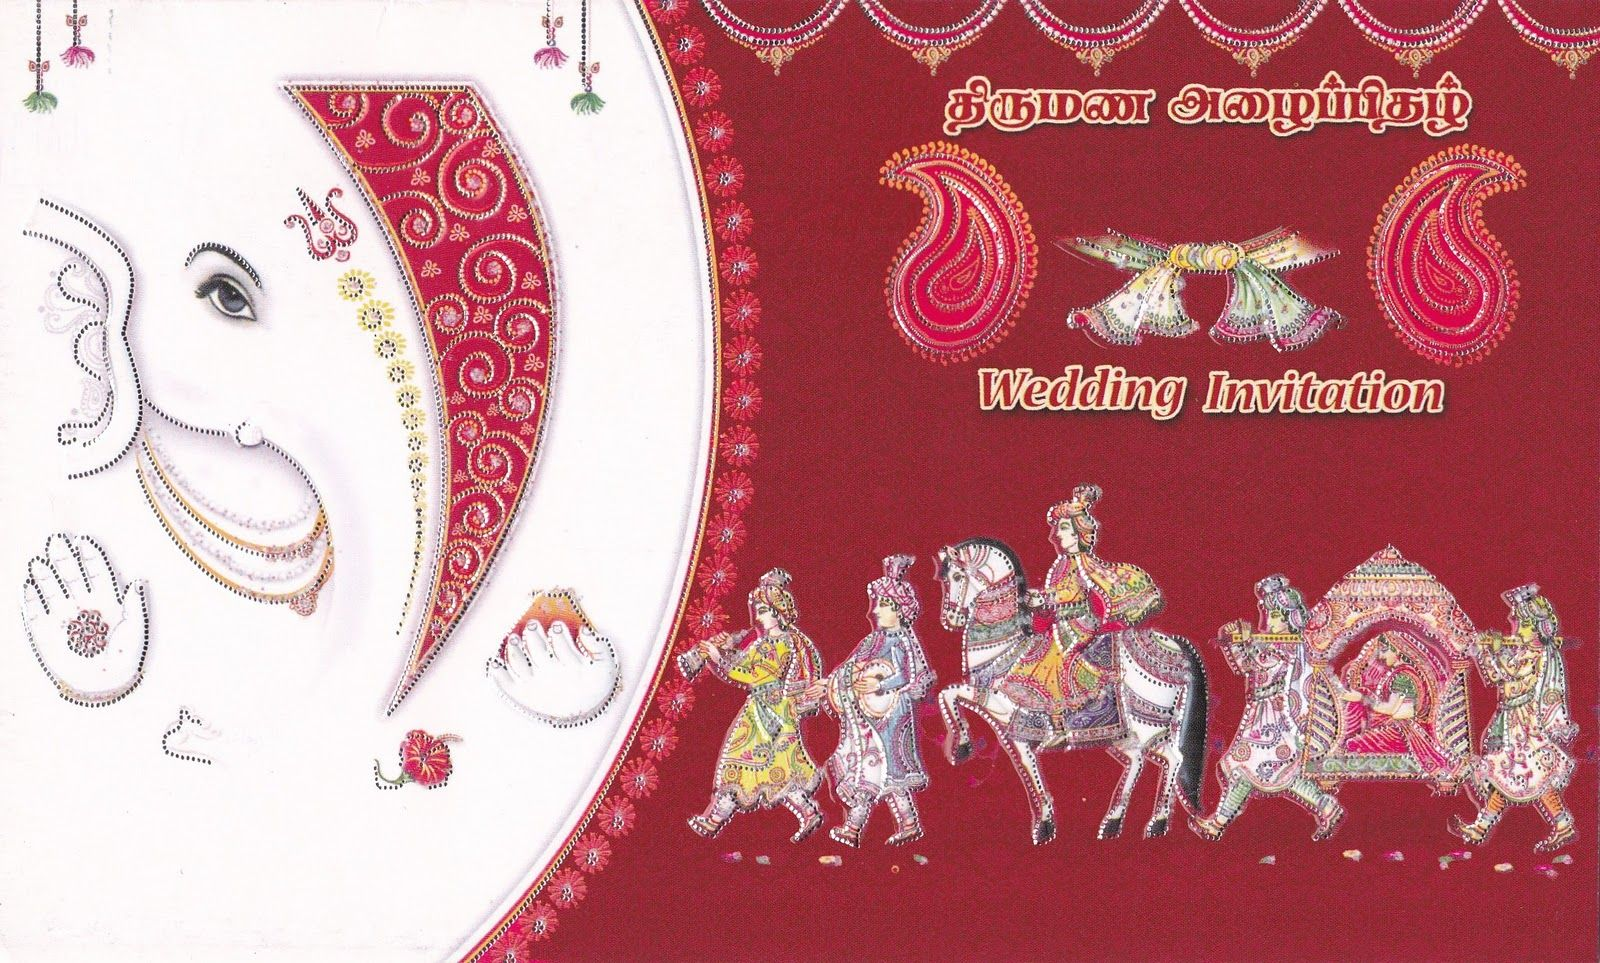 ihwc0010 indian wedding cards design indian wedding cards wedding – Indian Wedding Card Design